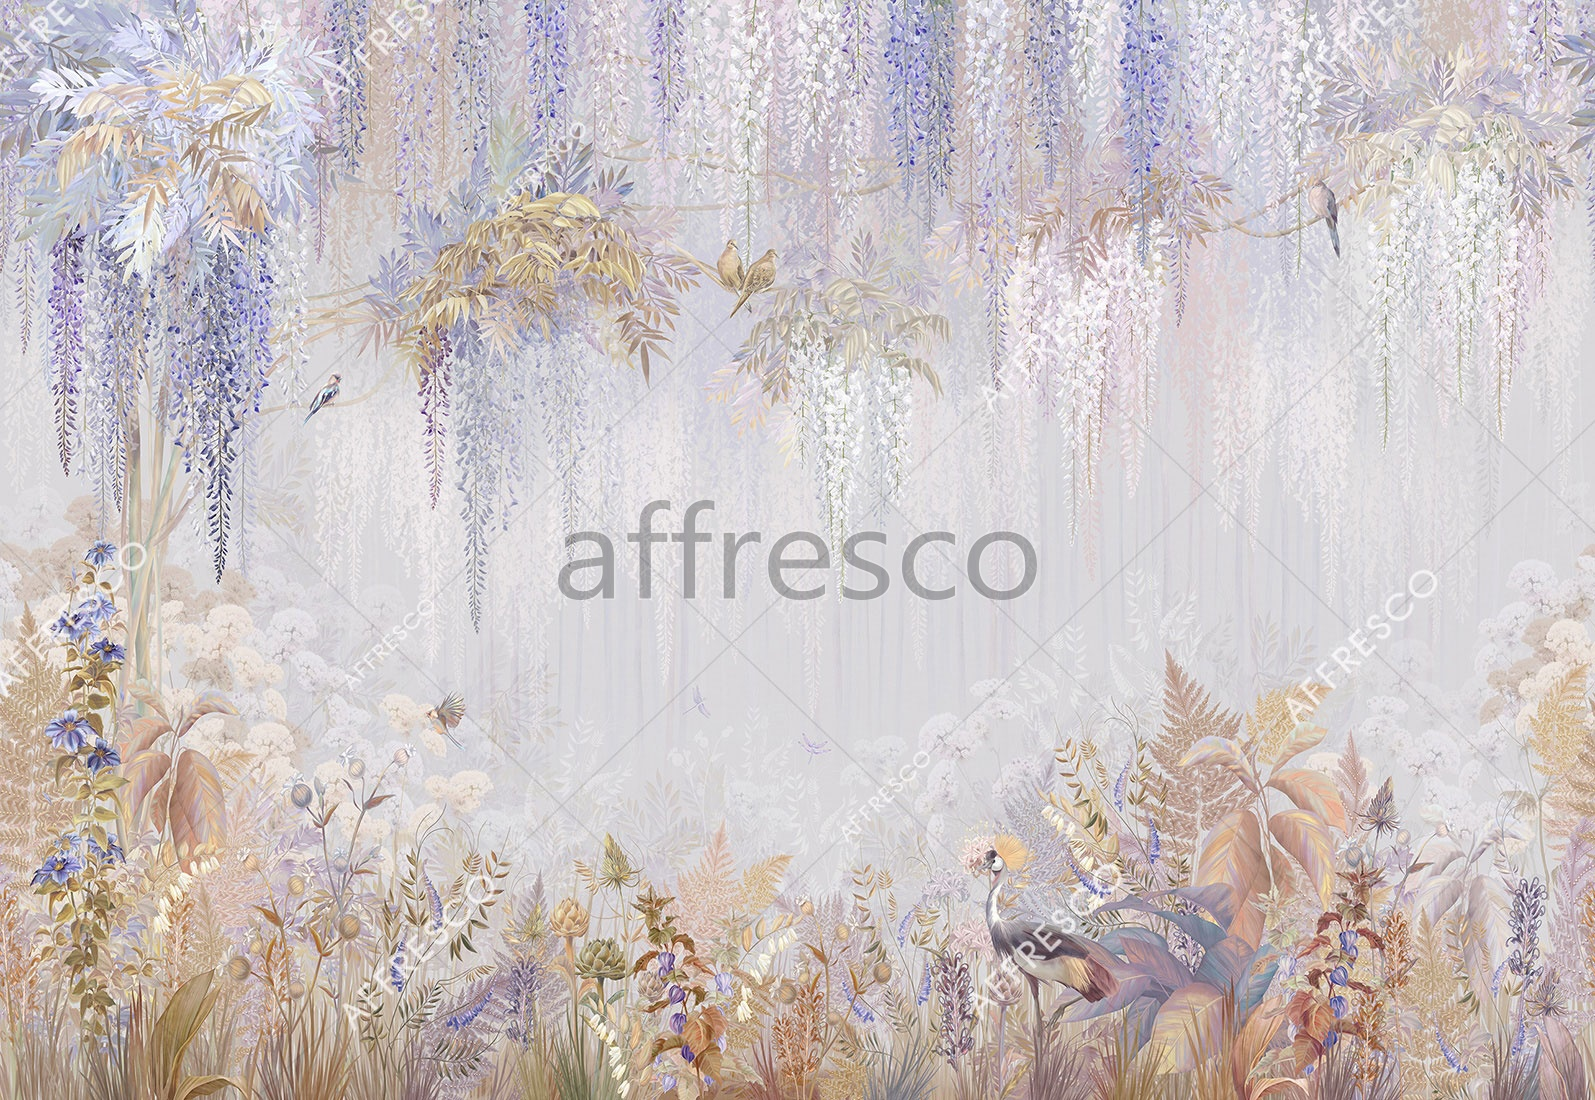 ID136006 | Forest |  | Affresco Factory